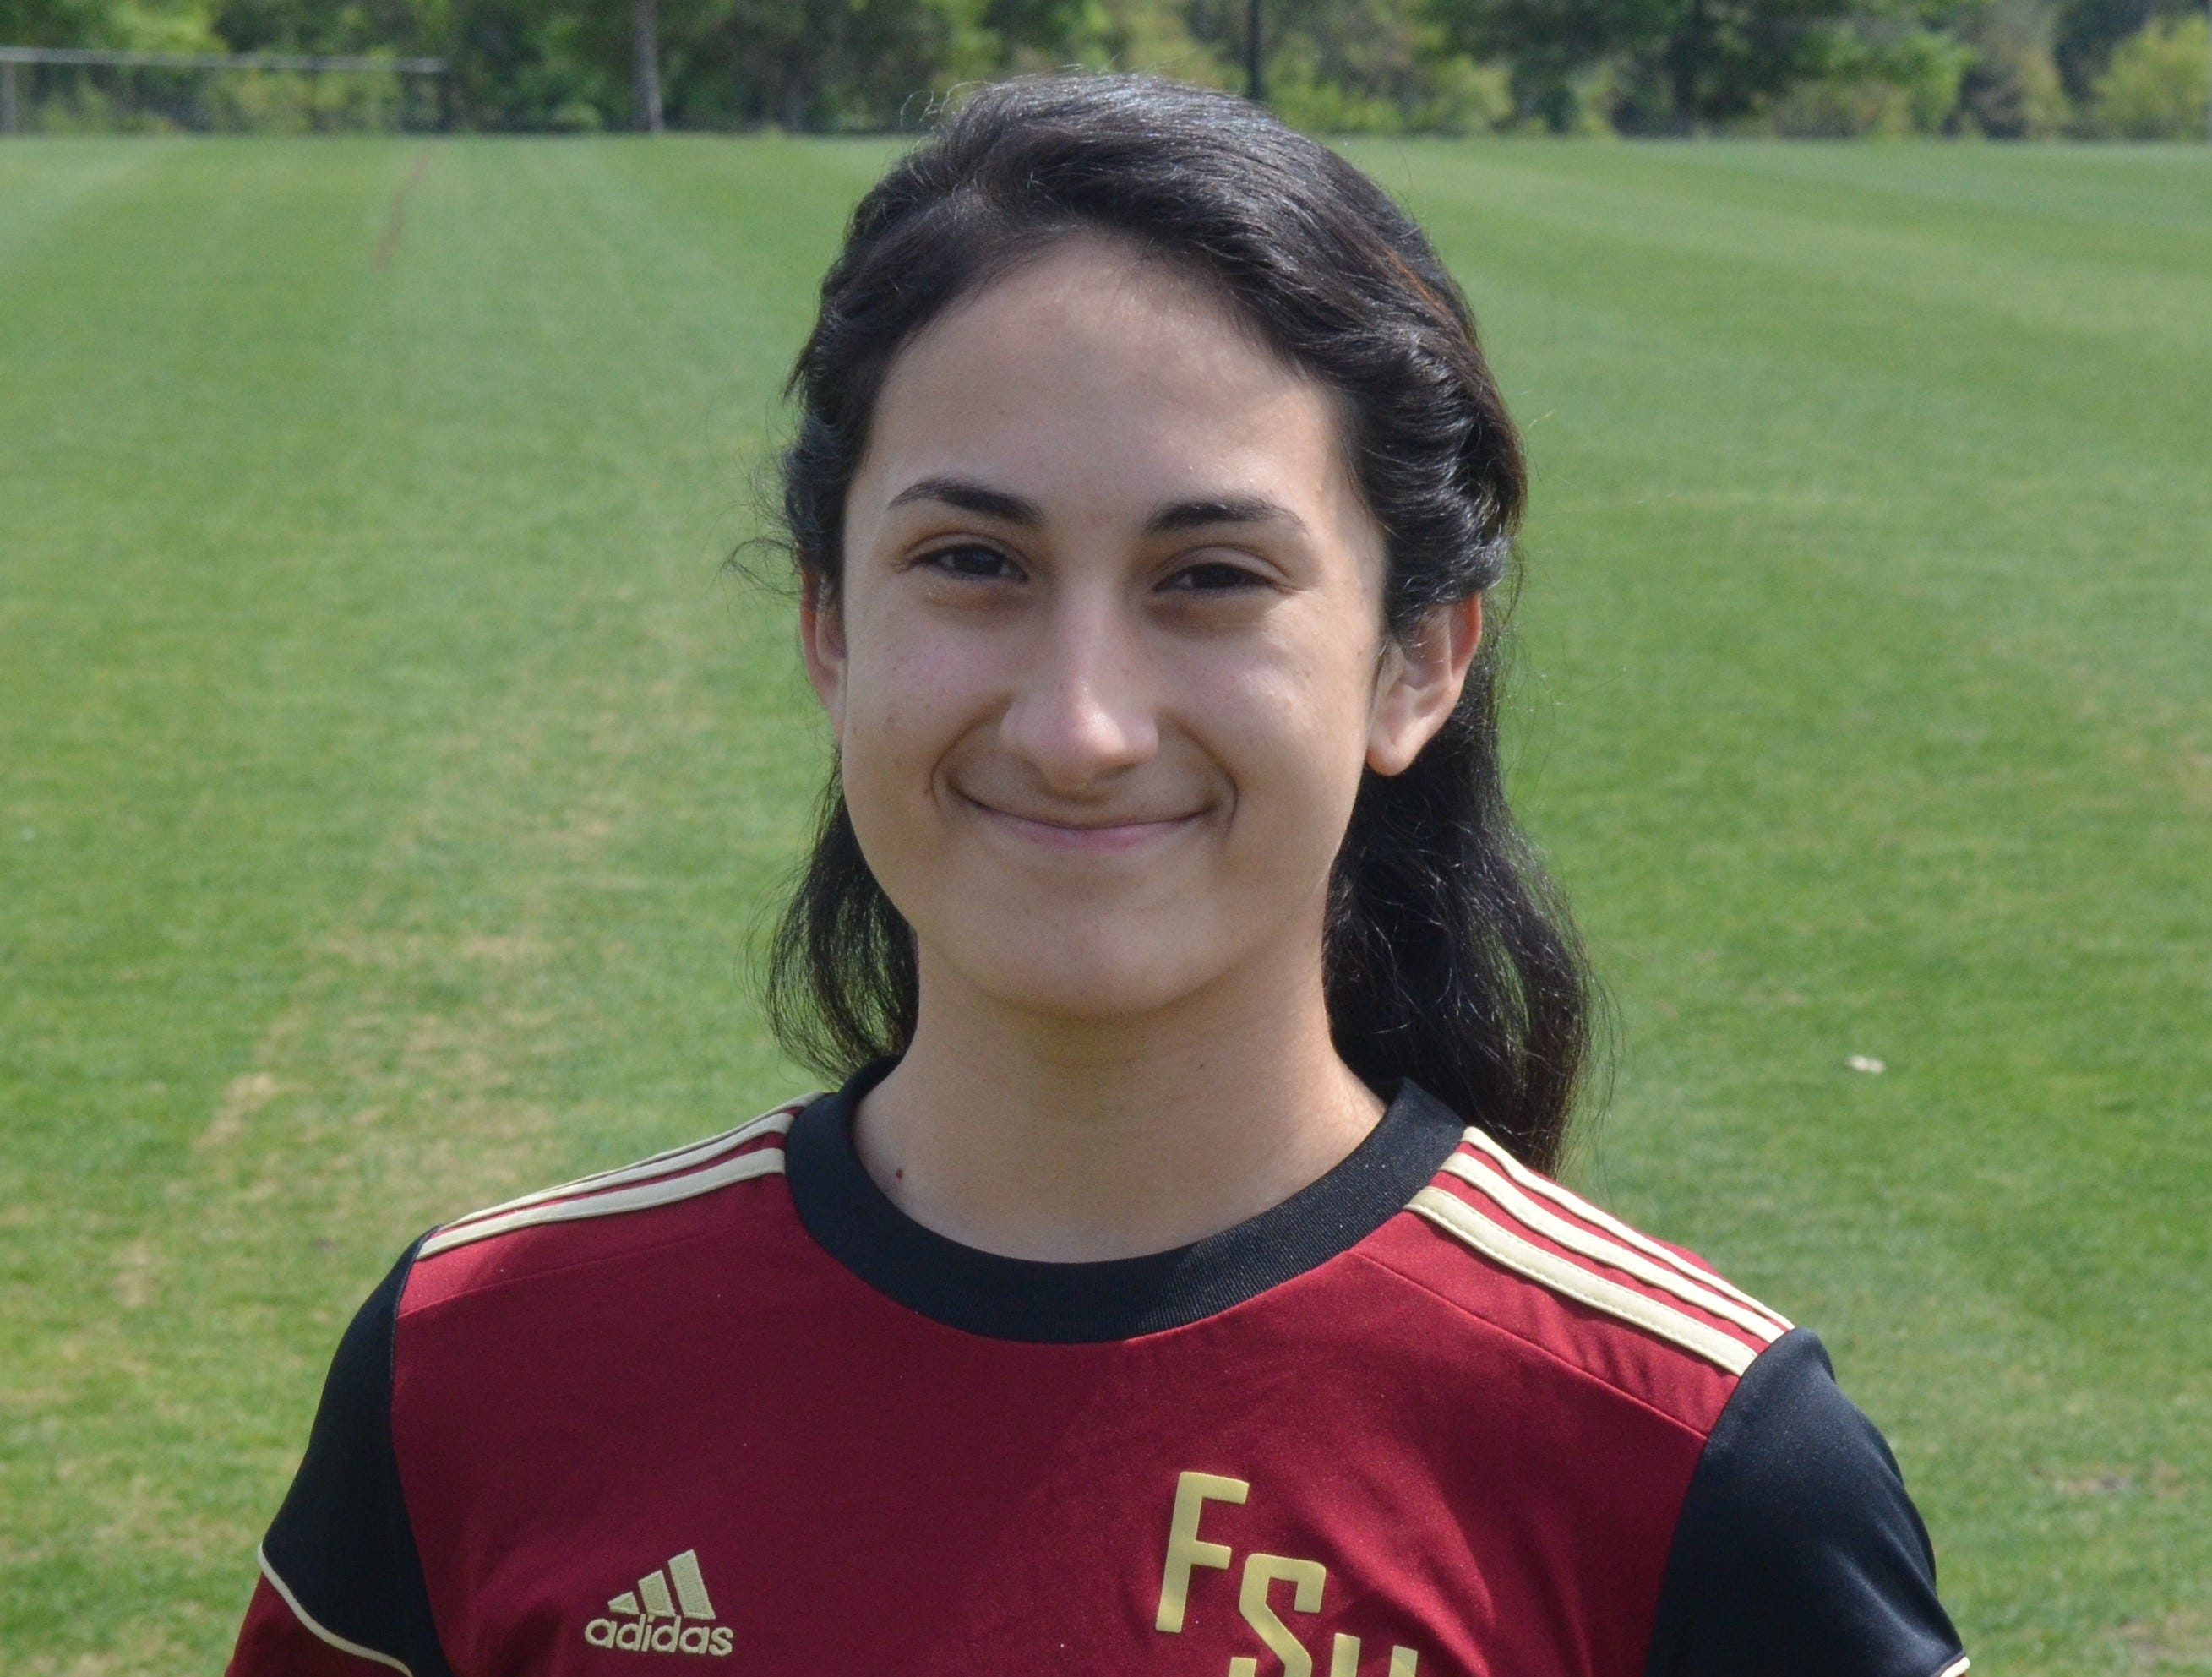 Florida High junior forward Lily Quijada was named to the 2019 All-Big Bend girls soccer first team.